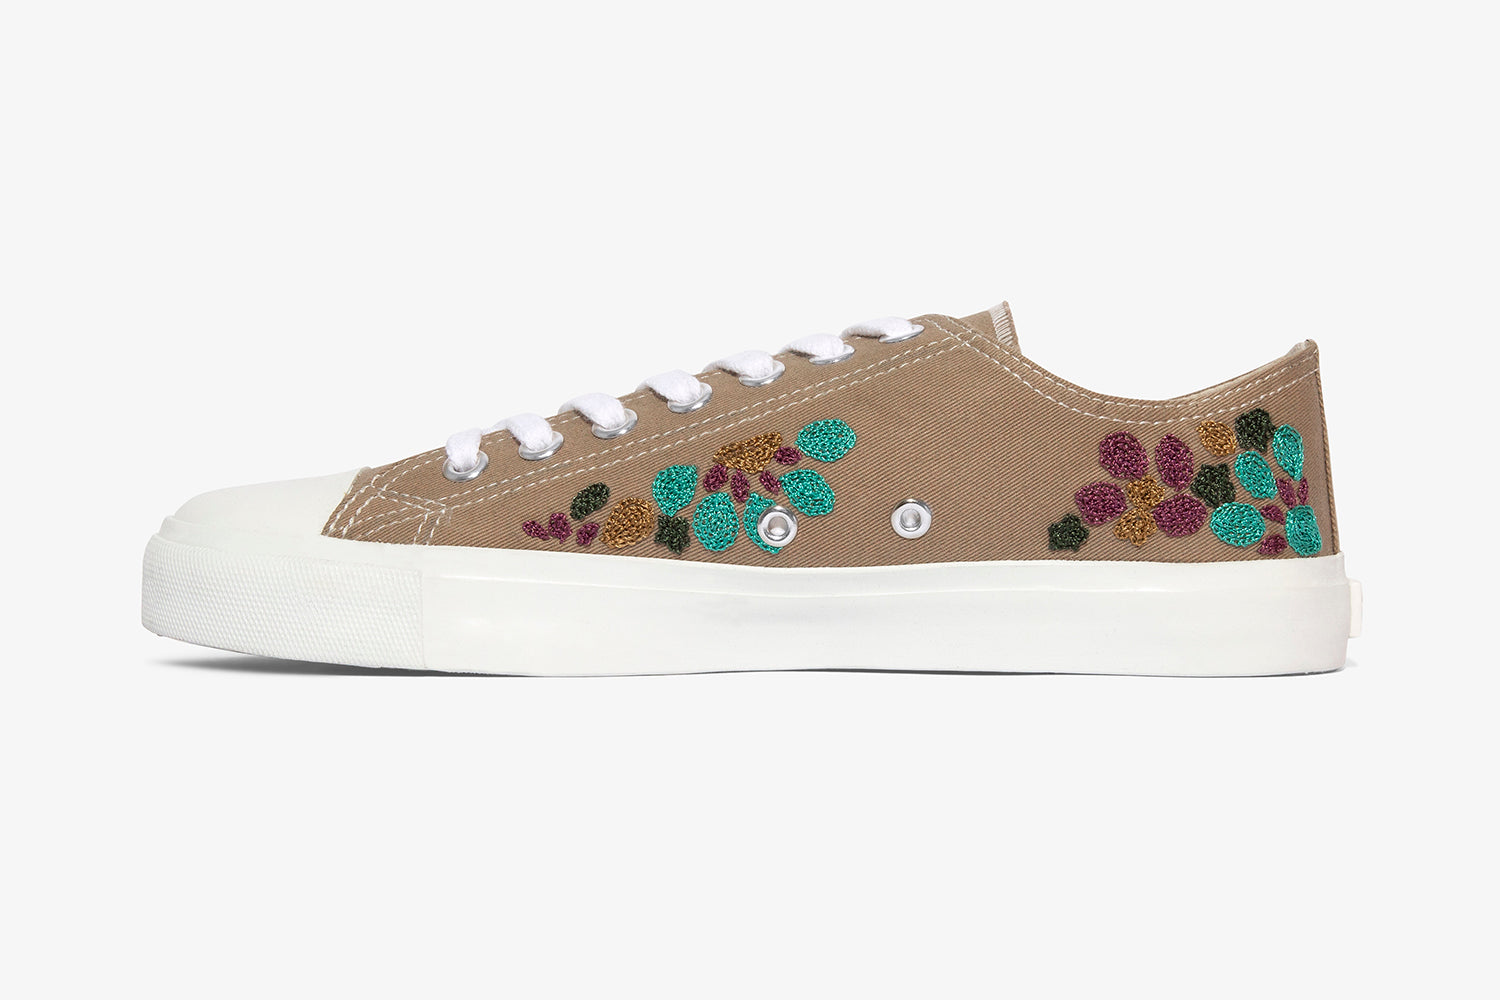 Vegan sneakers hand embroidered on canvas upper